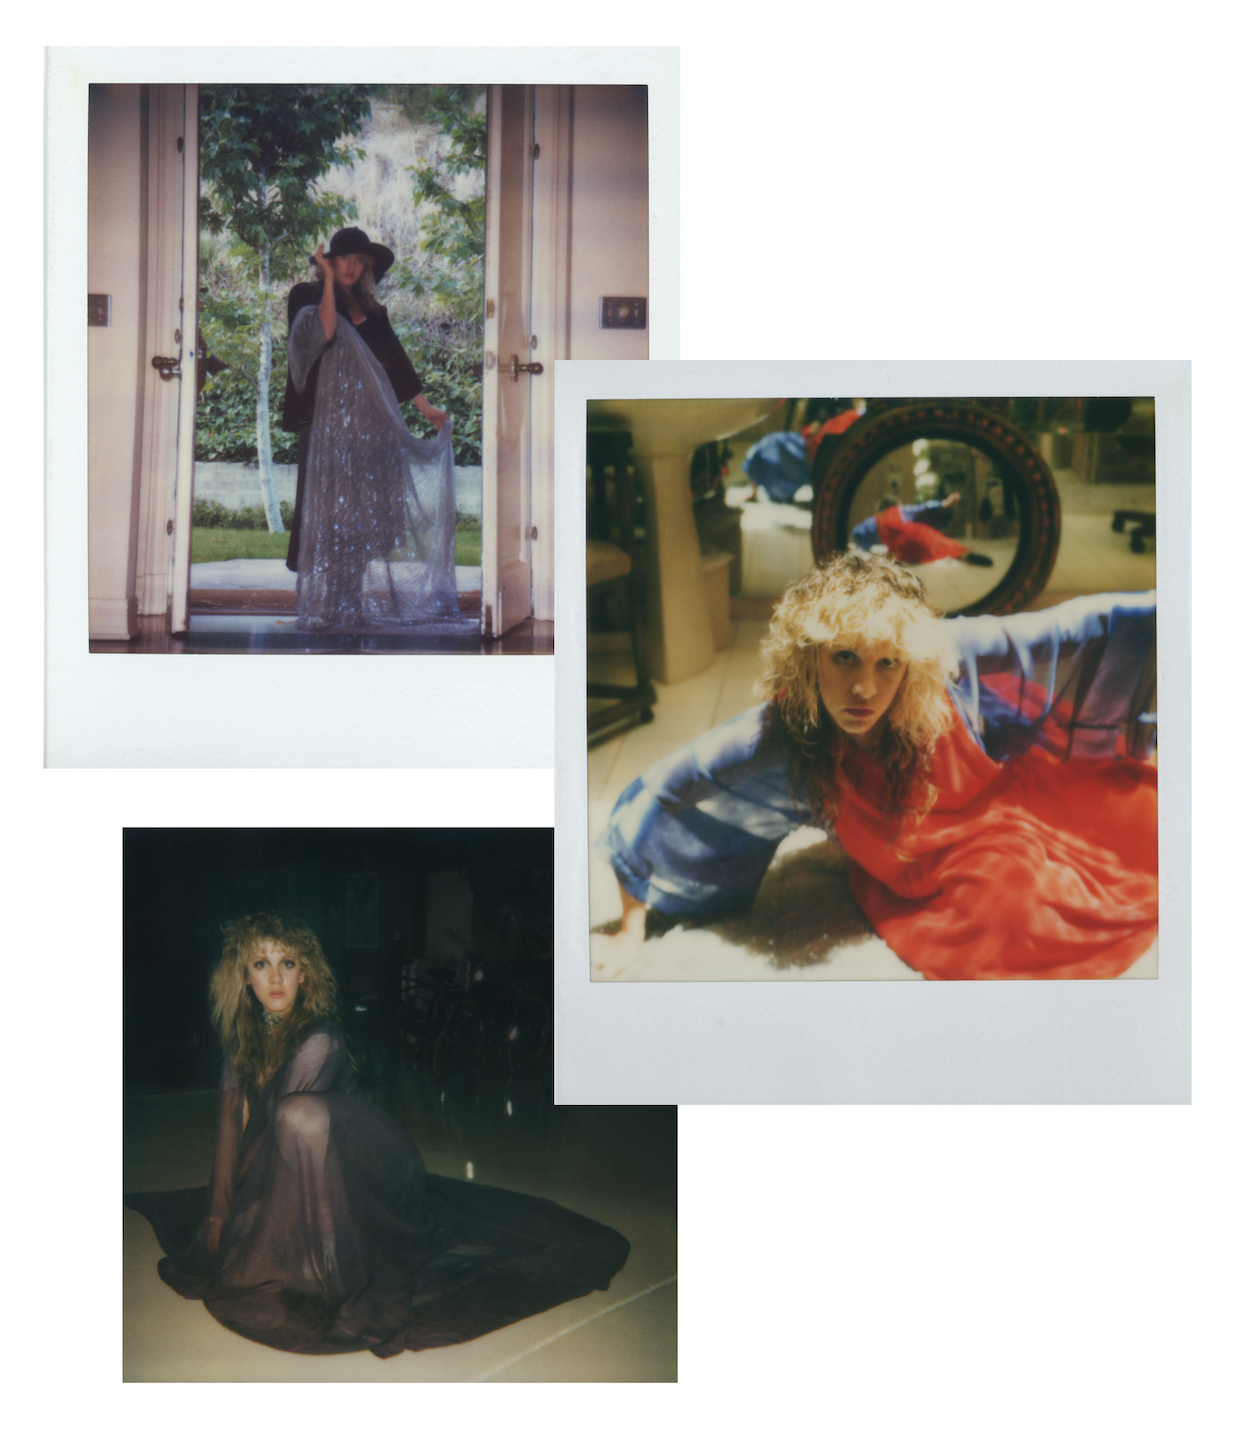 Polaroids of young Stevie Nicks from her website.